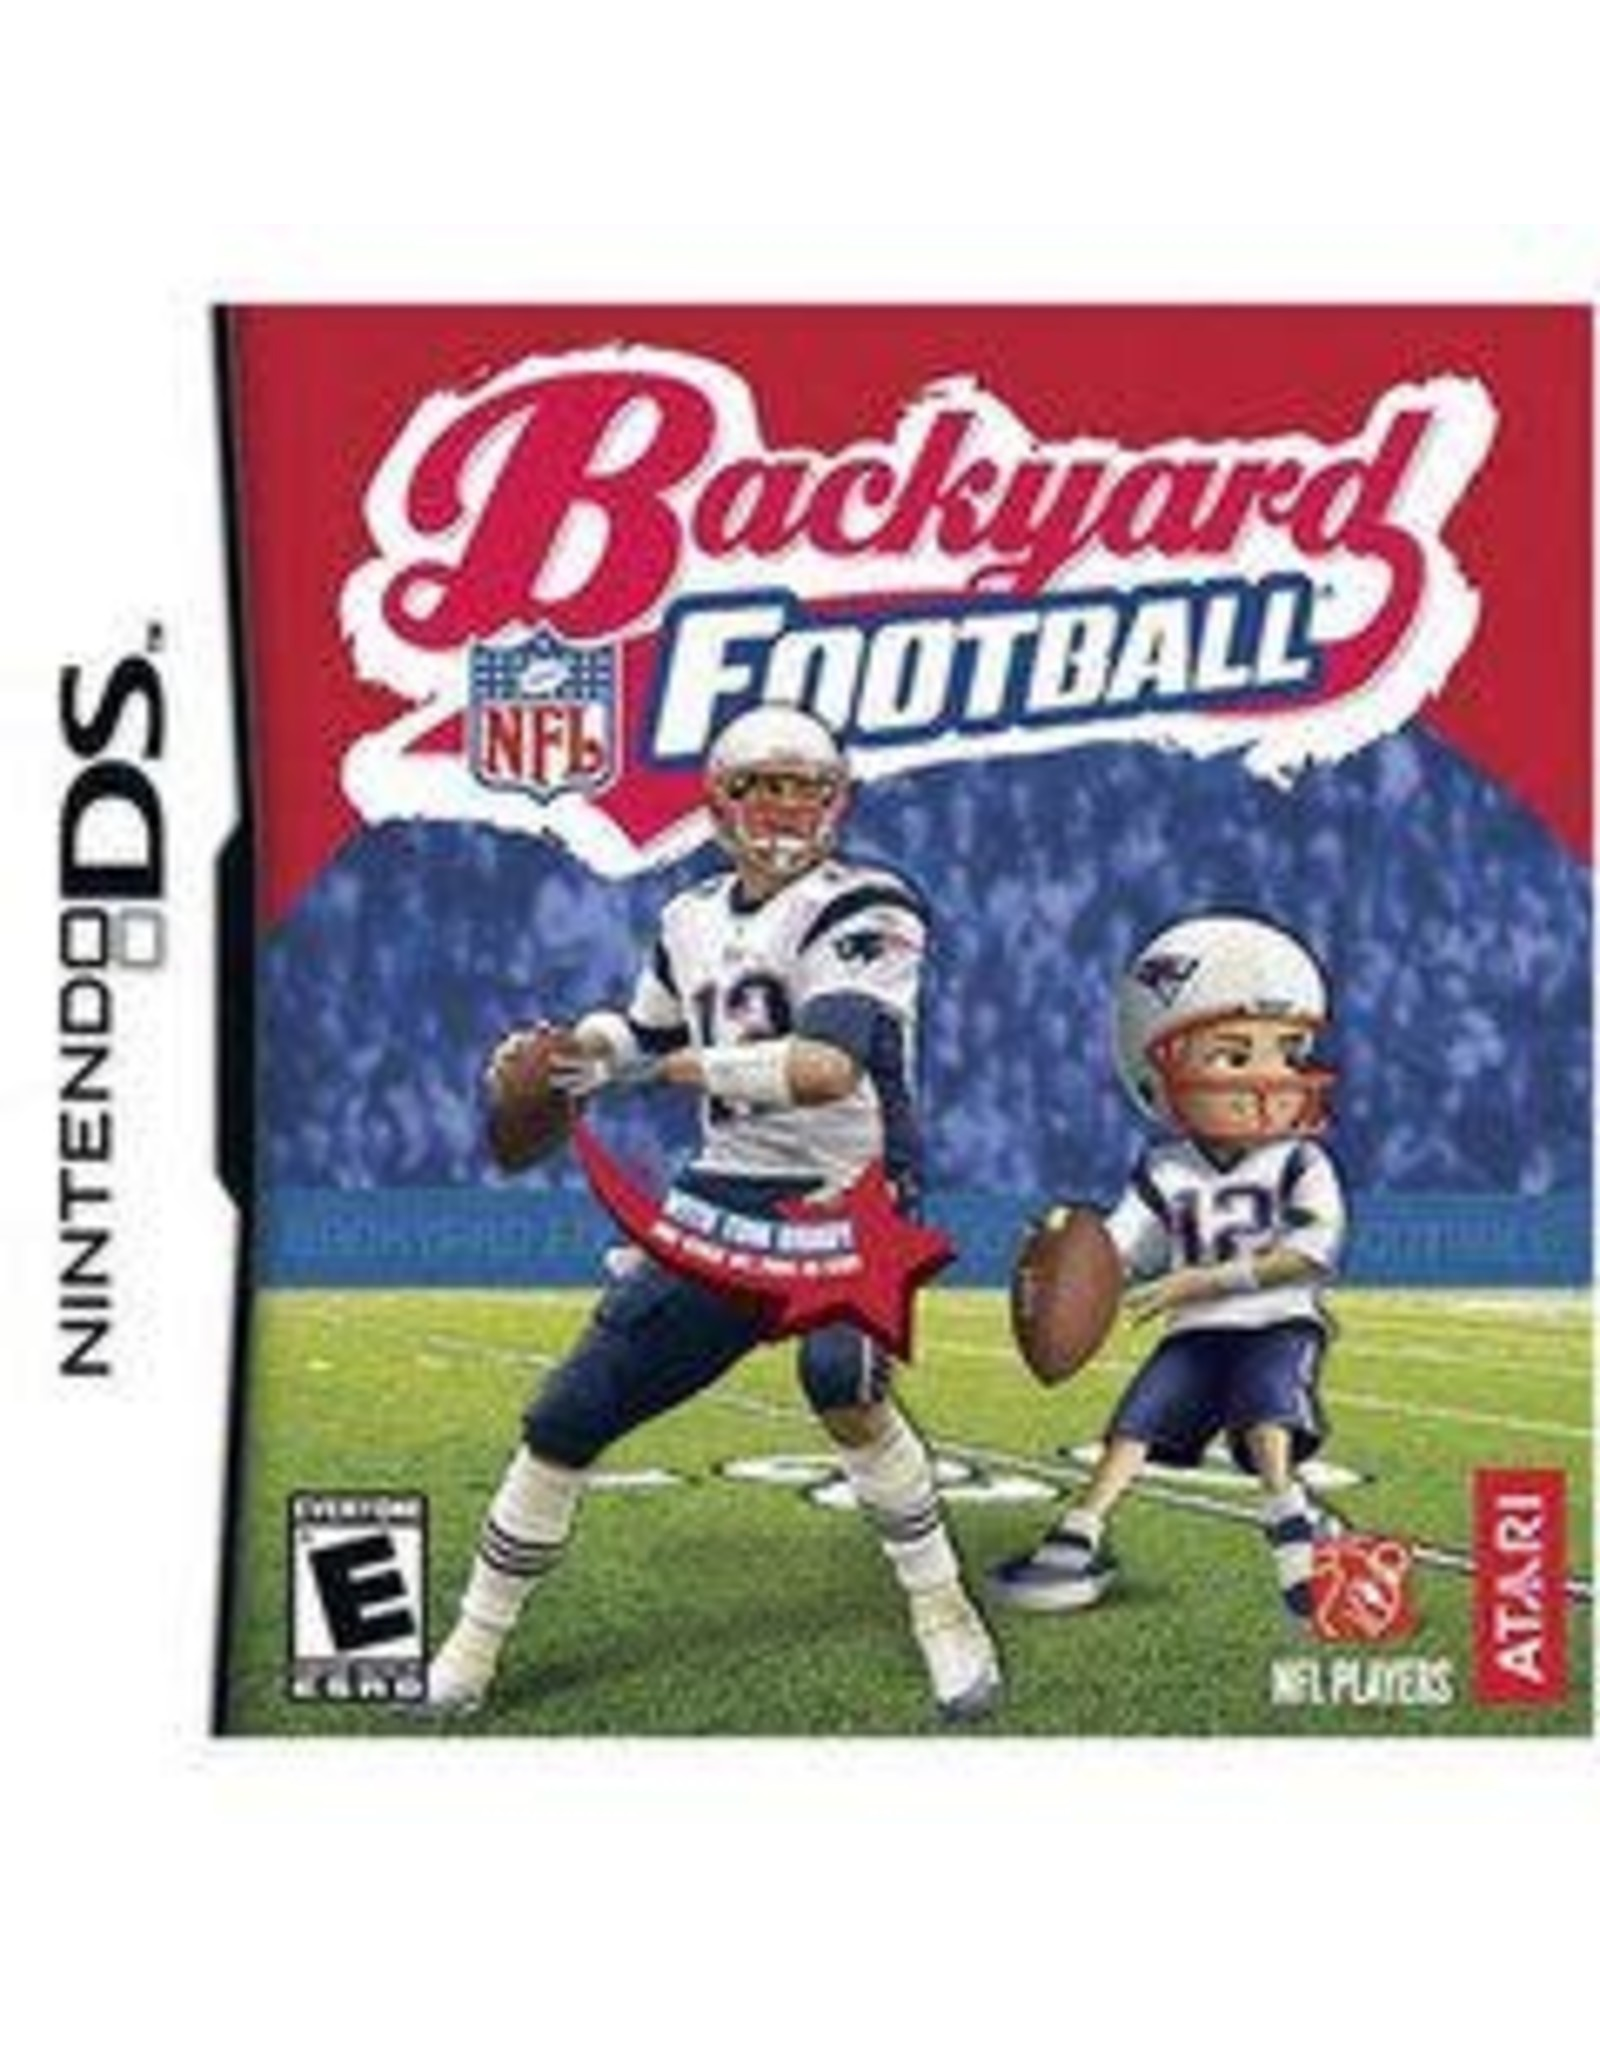 Nintendo DS Backyard Football